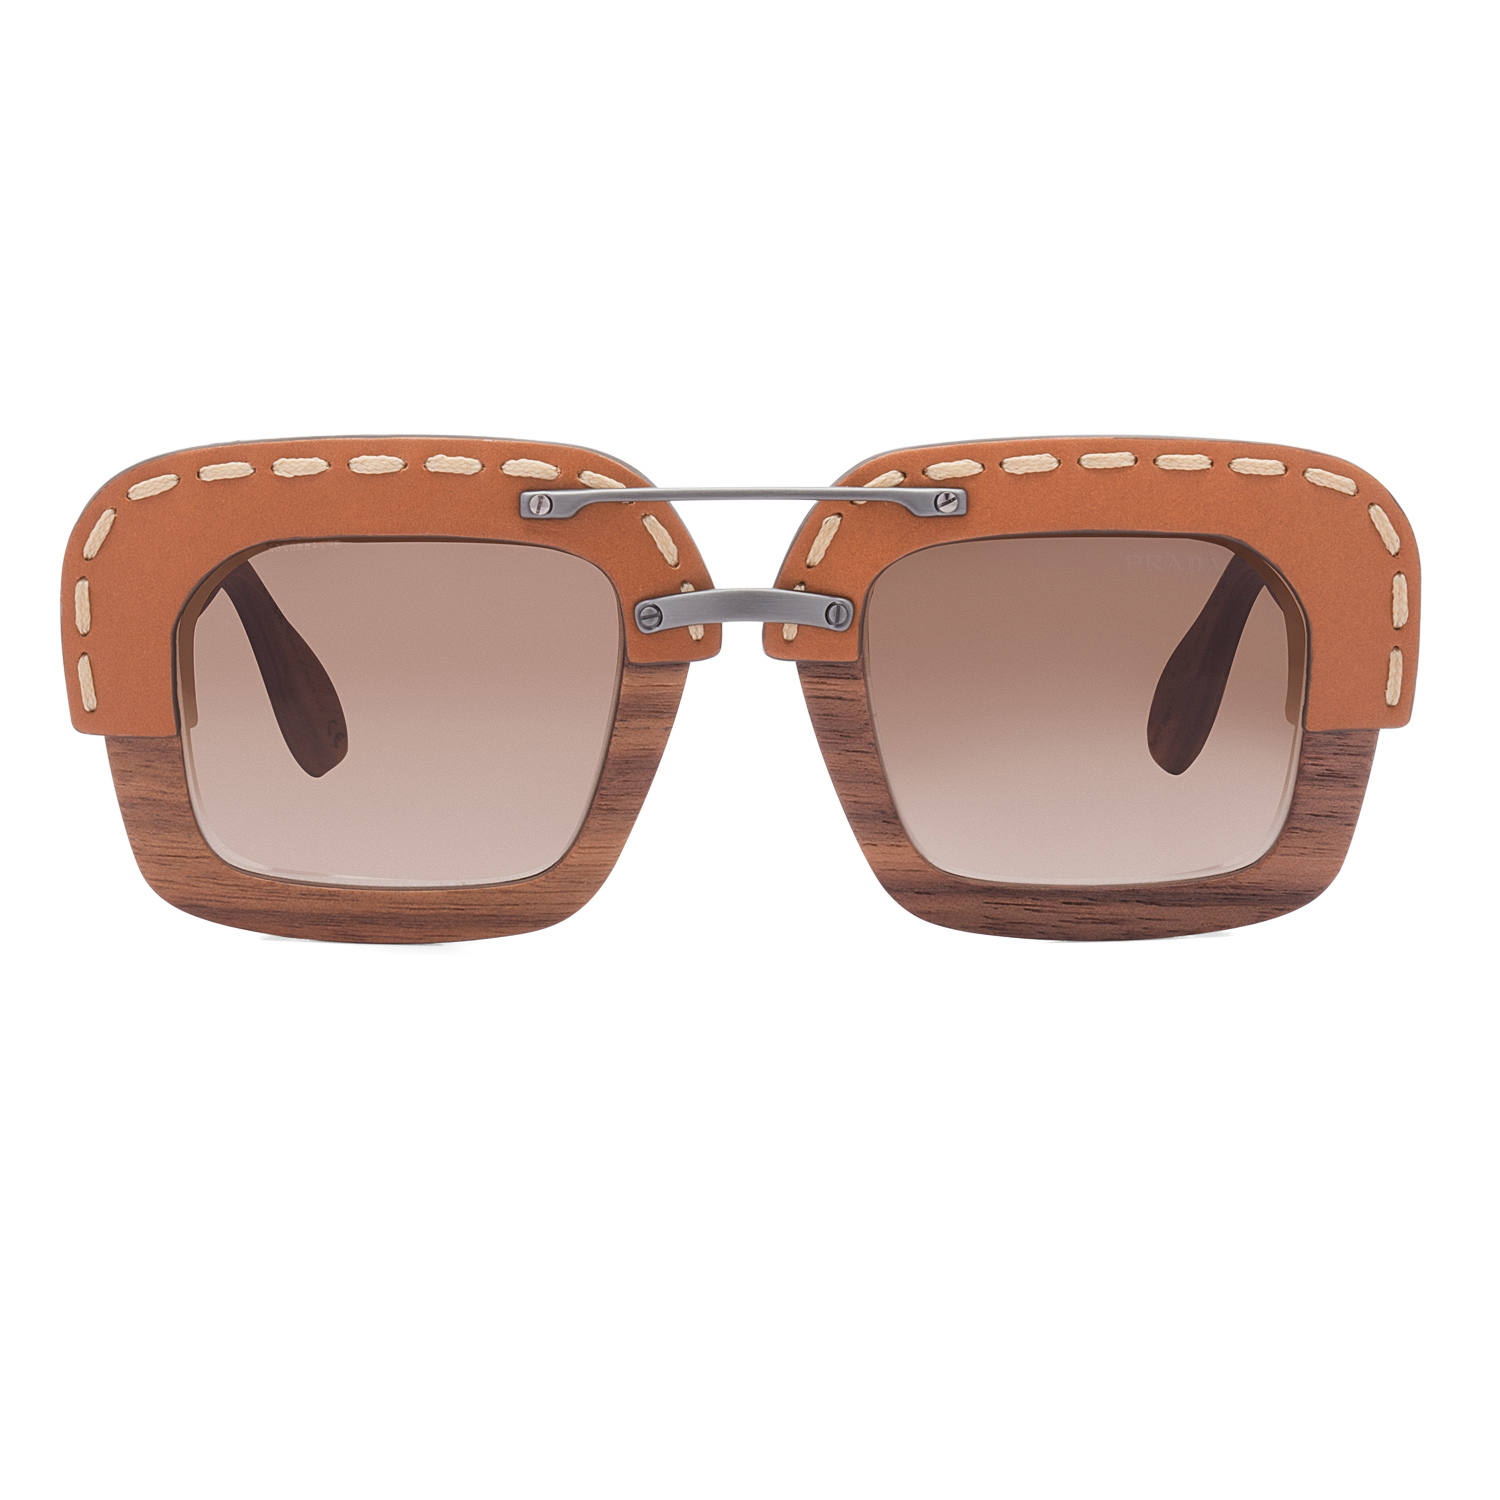 prada pr 26rs womens sunglasses ua76s1 brown nut canaletto wood leather frame - Wood Frame Sunglasses